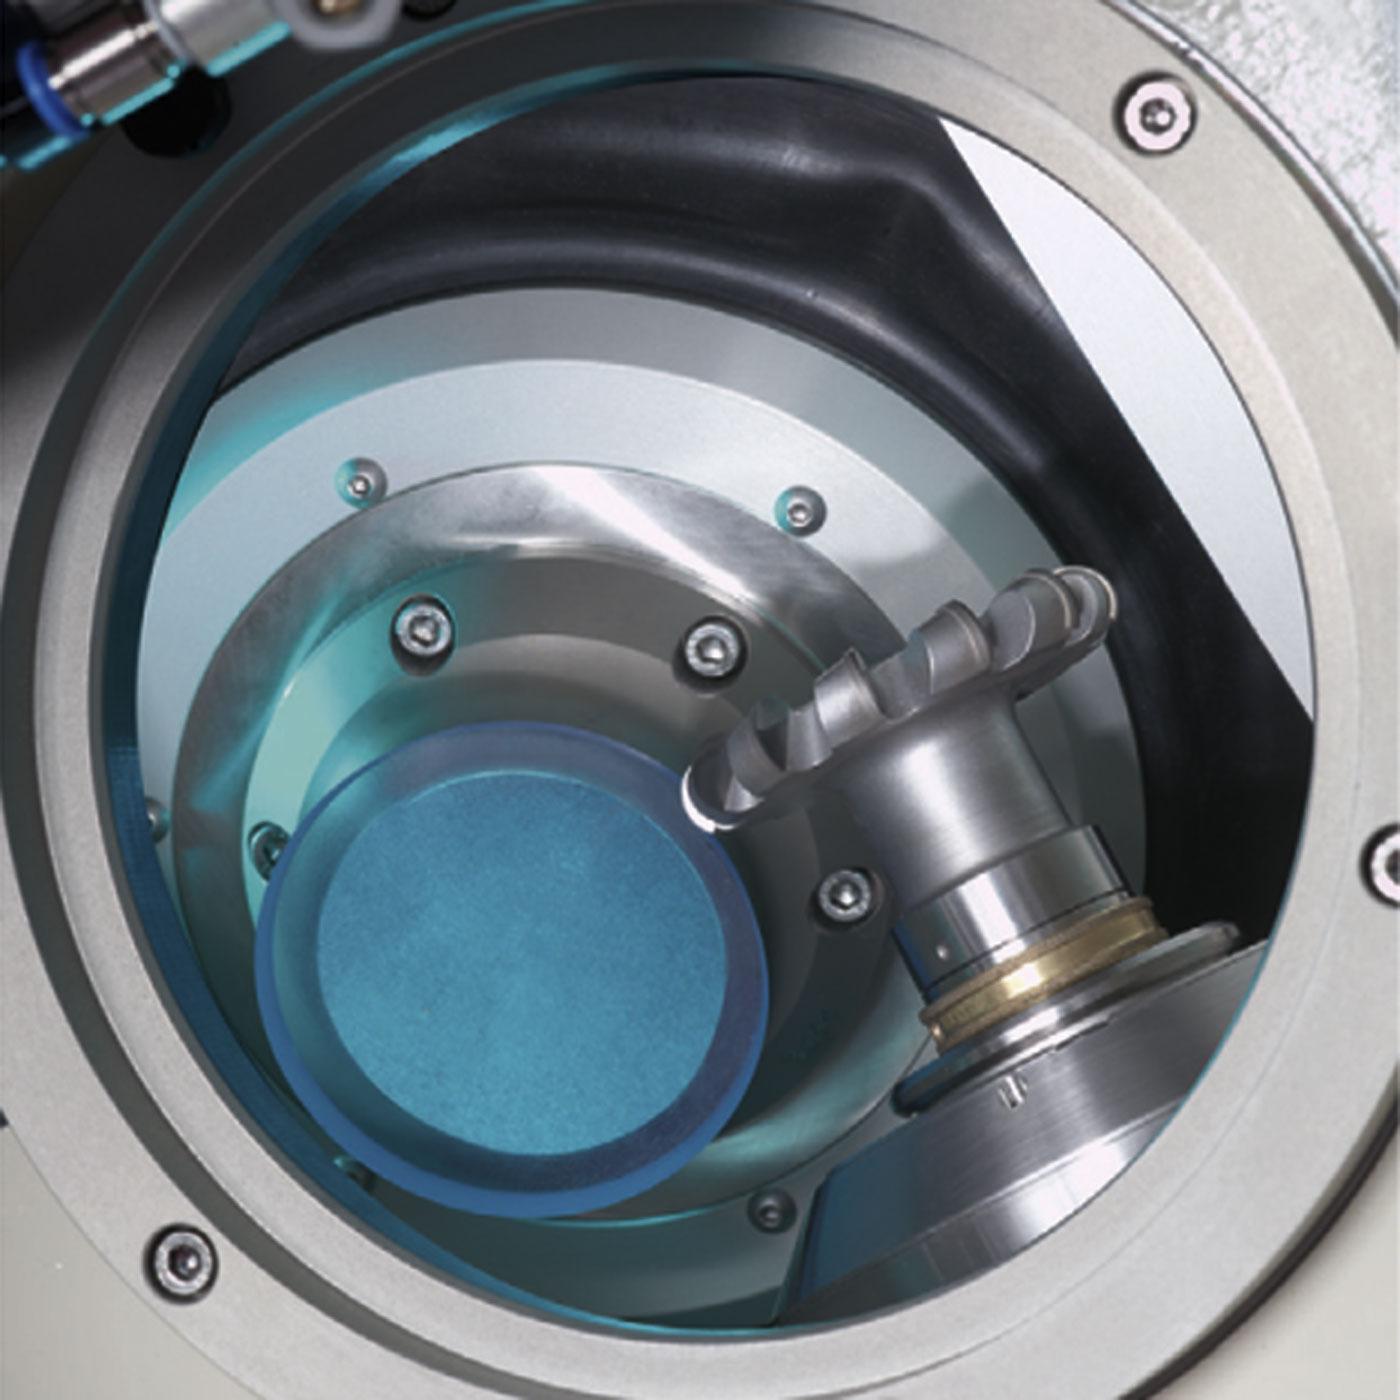 HSC nano X / sprint - lens and milling tool in an aencapsulated area